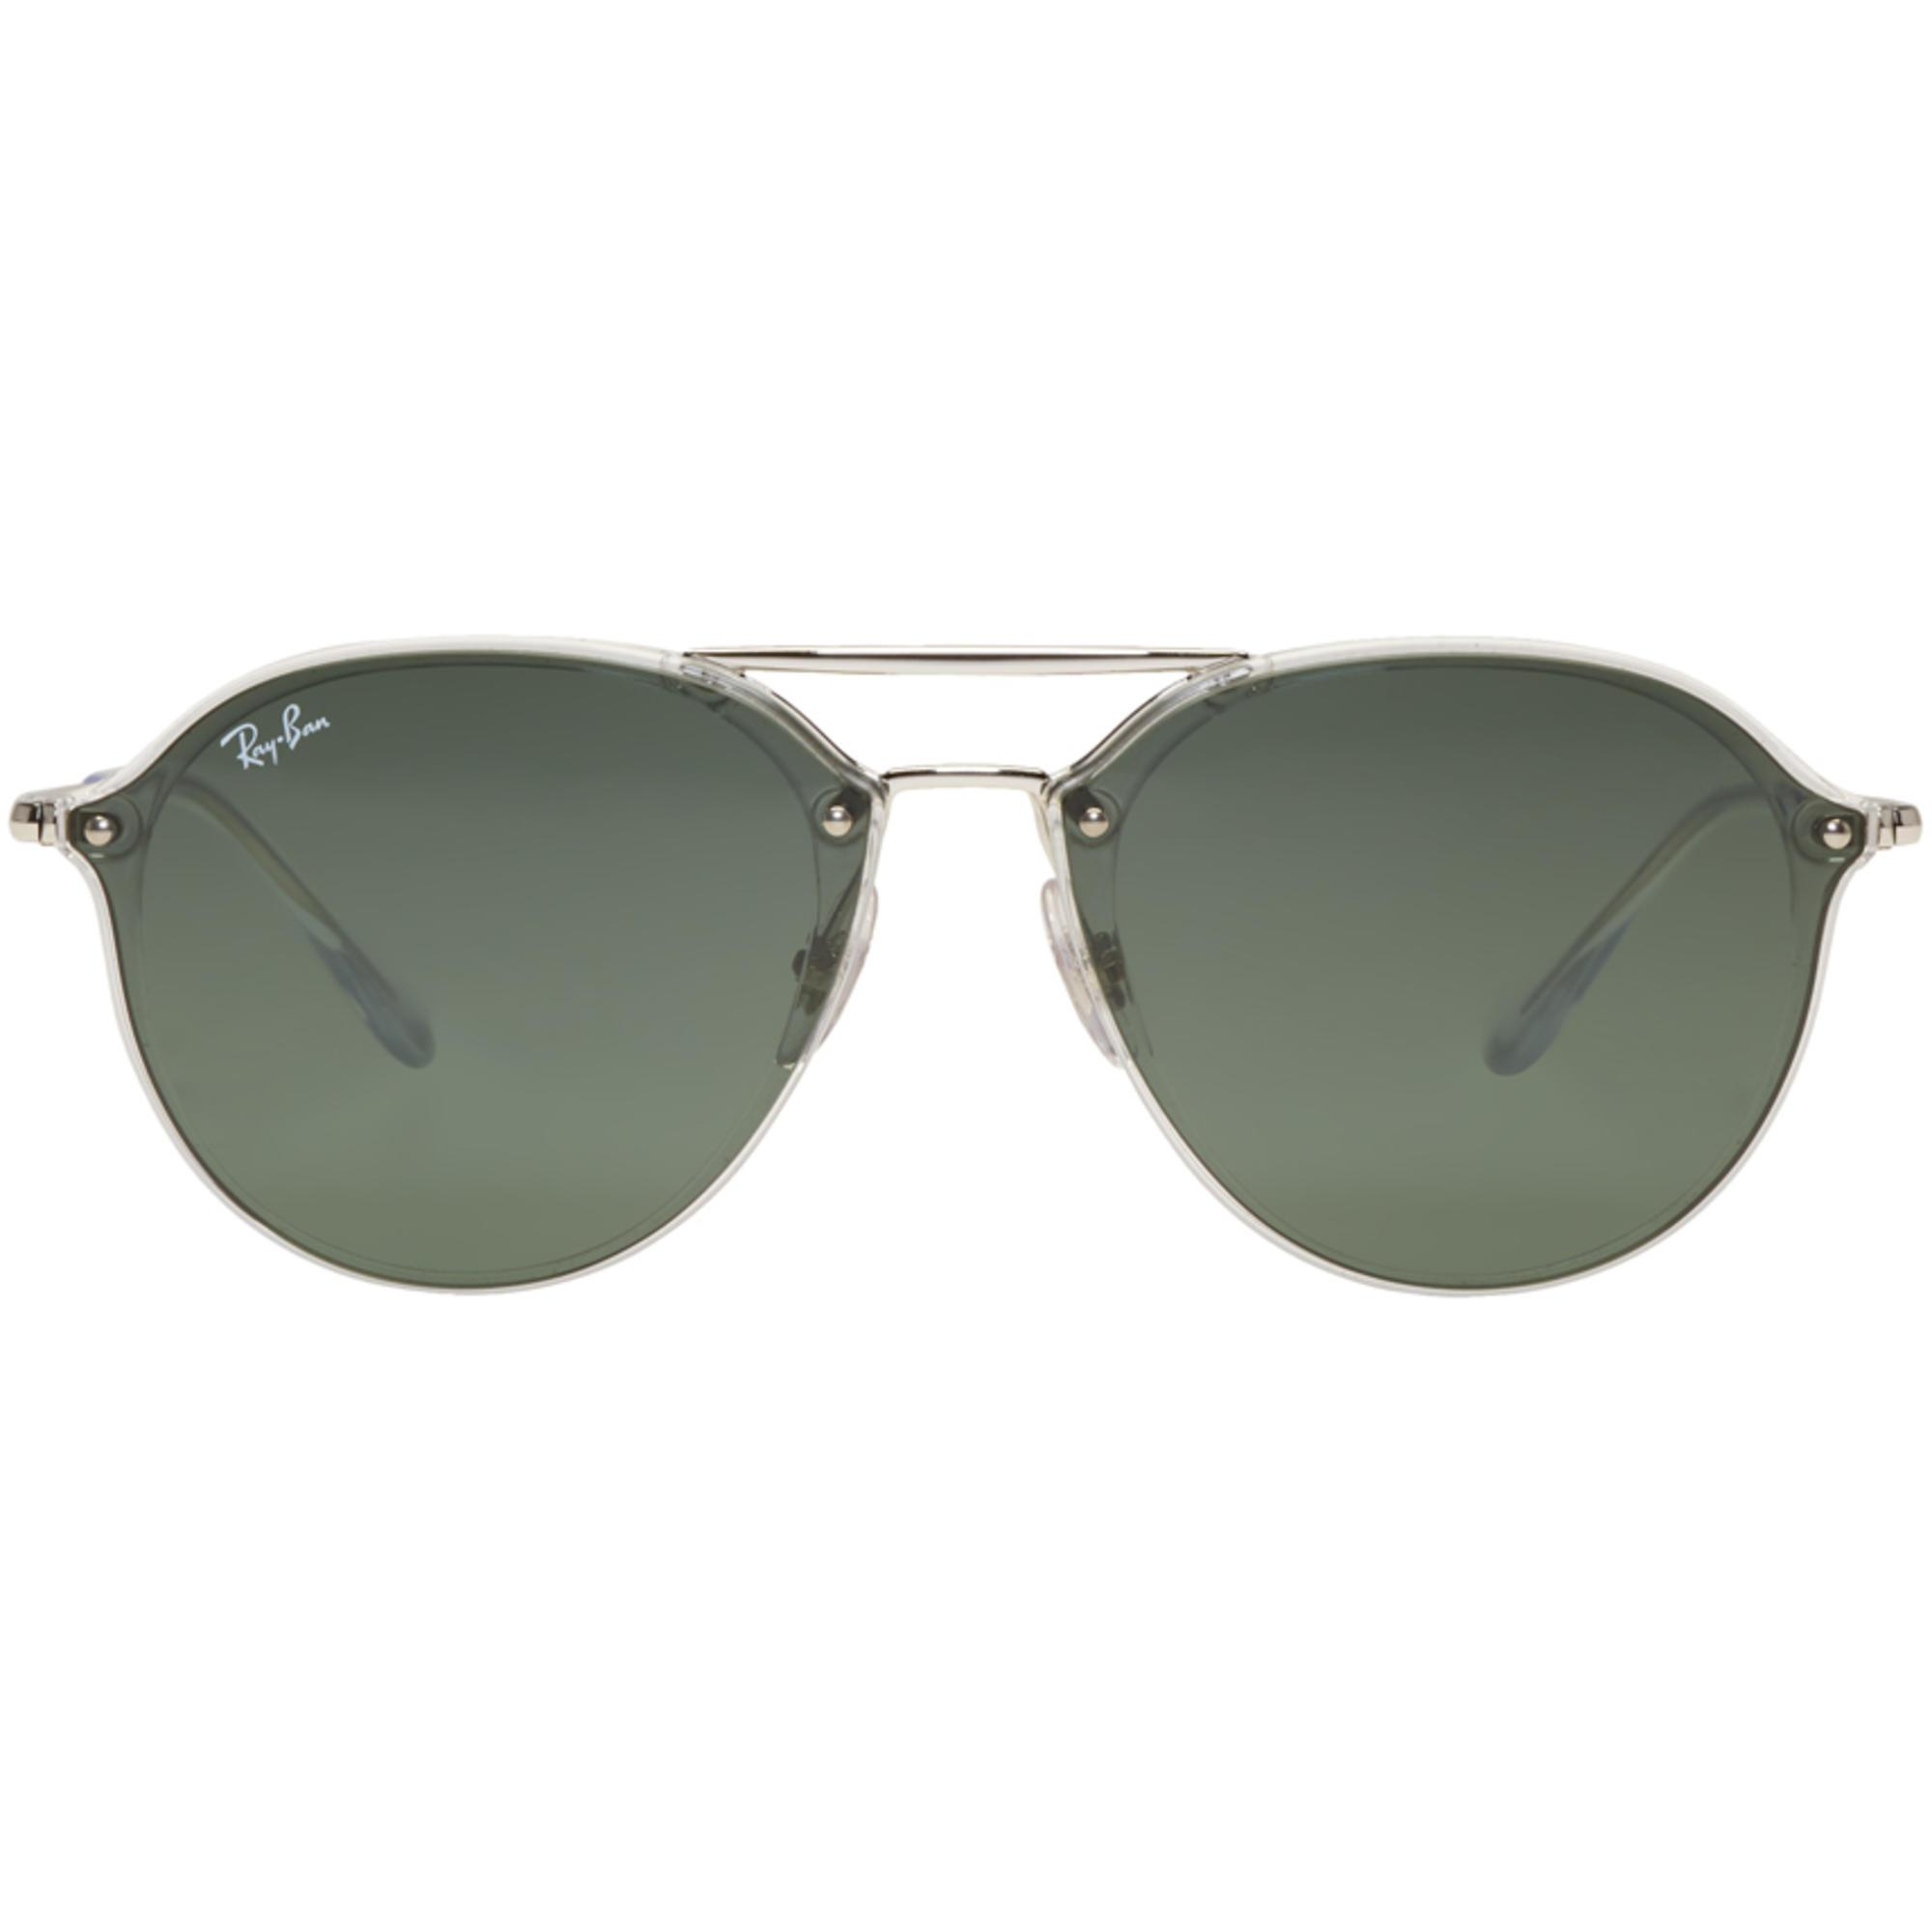 a9fffcb0812 Lyst - Ray-Ban Silver And Green Blaze Sunglasses in Metallic